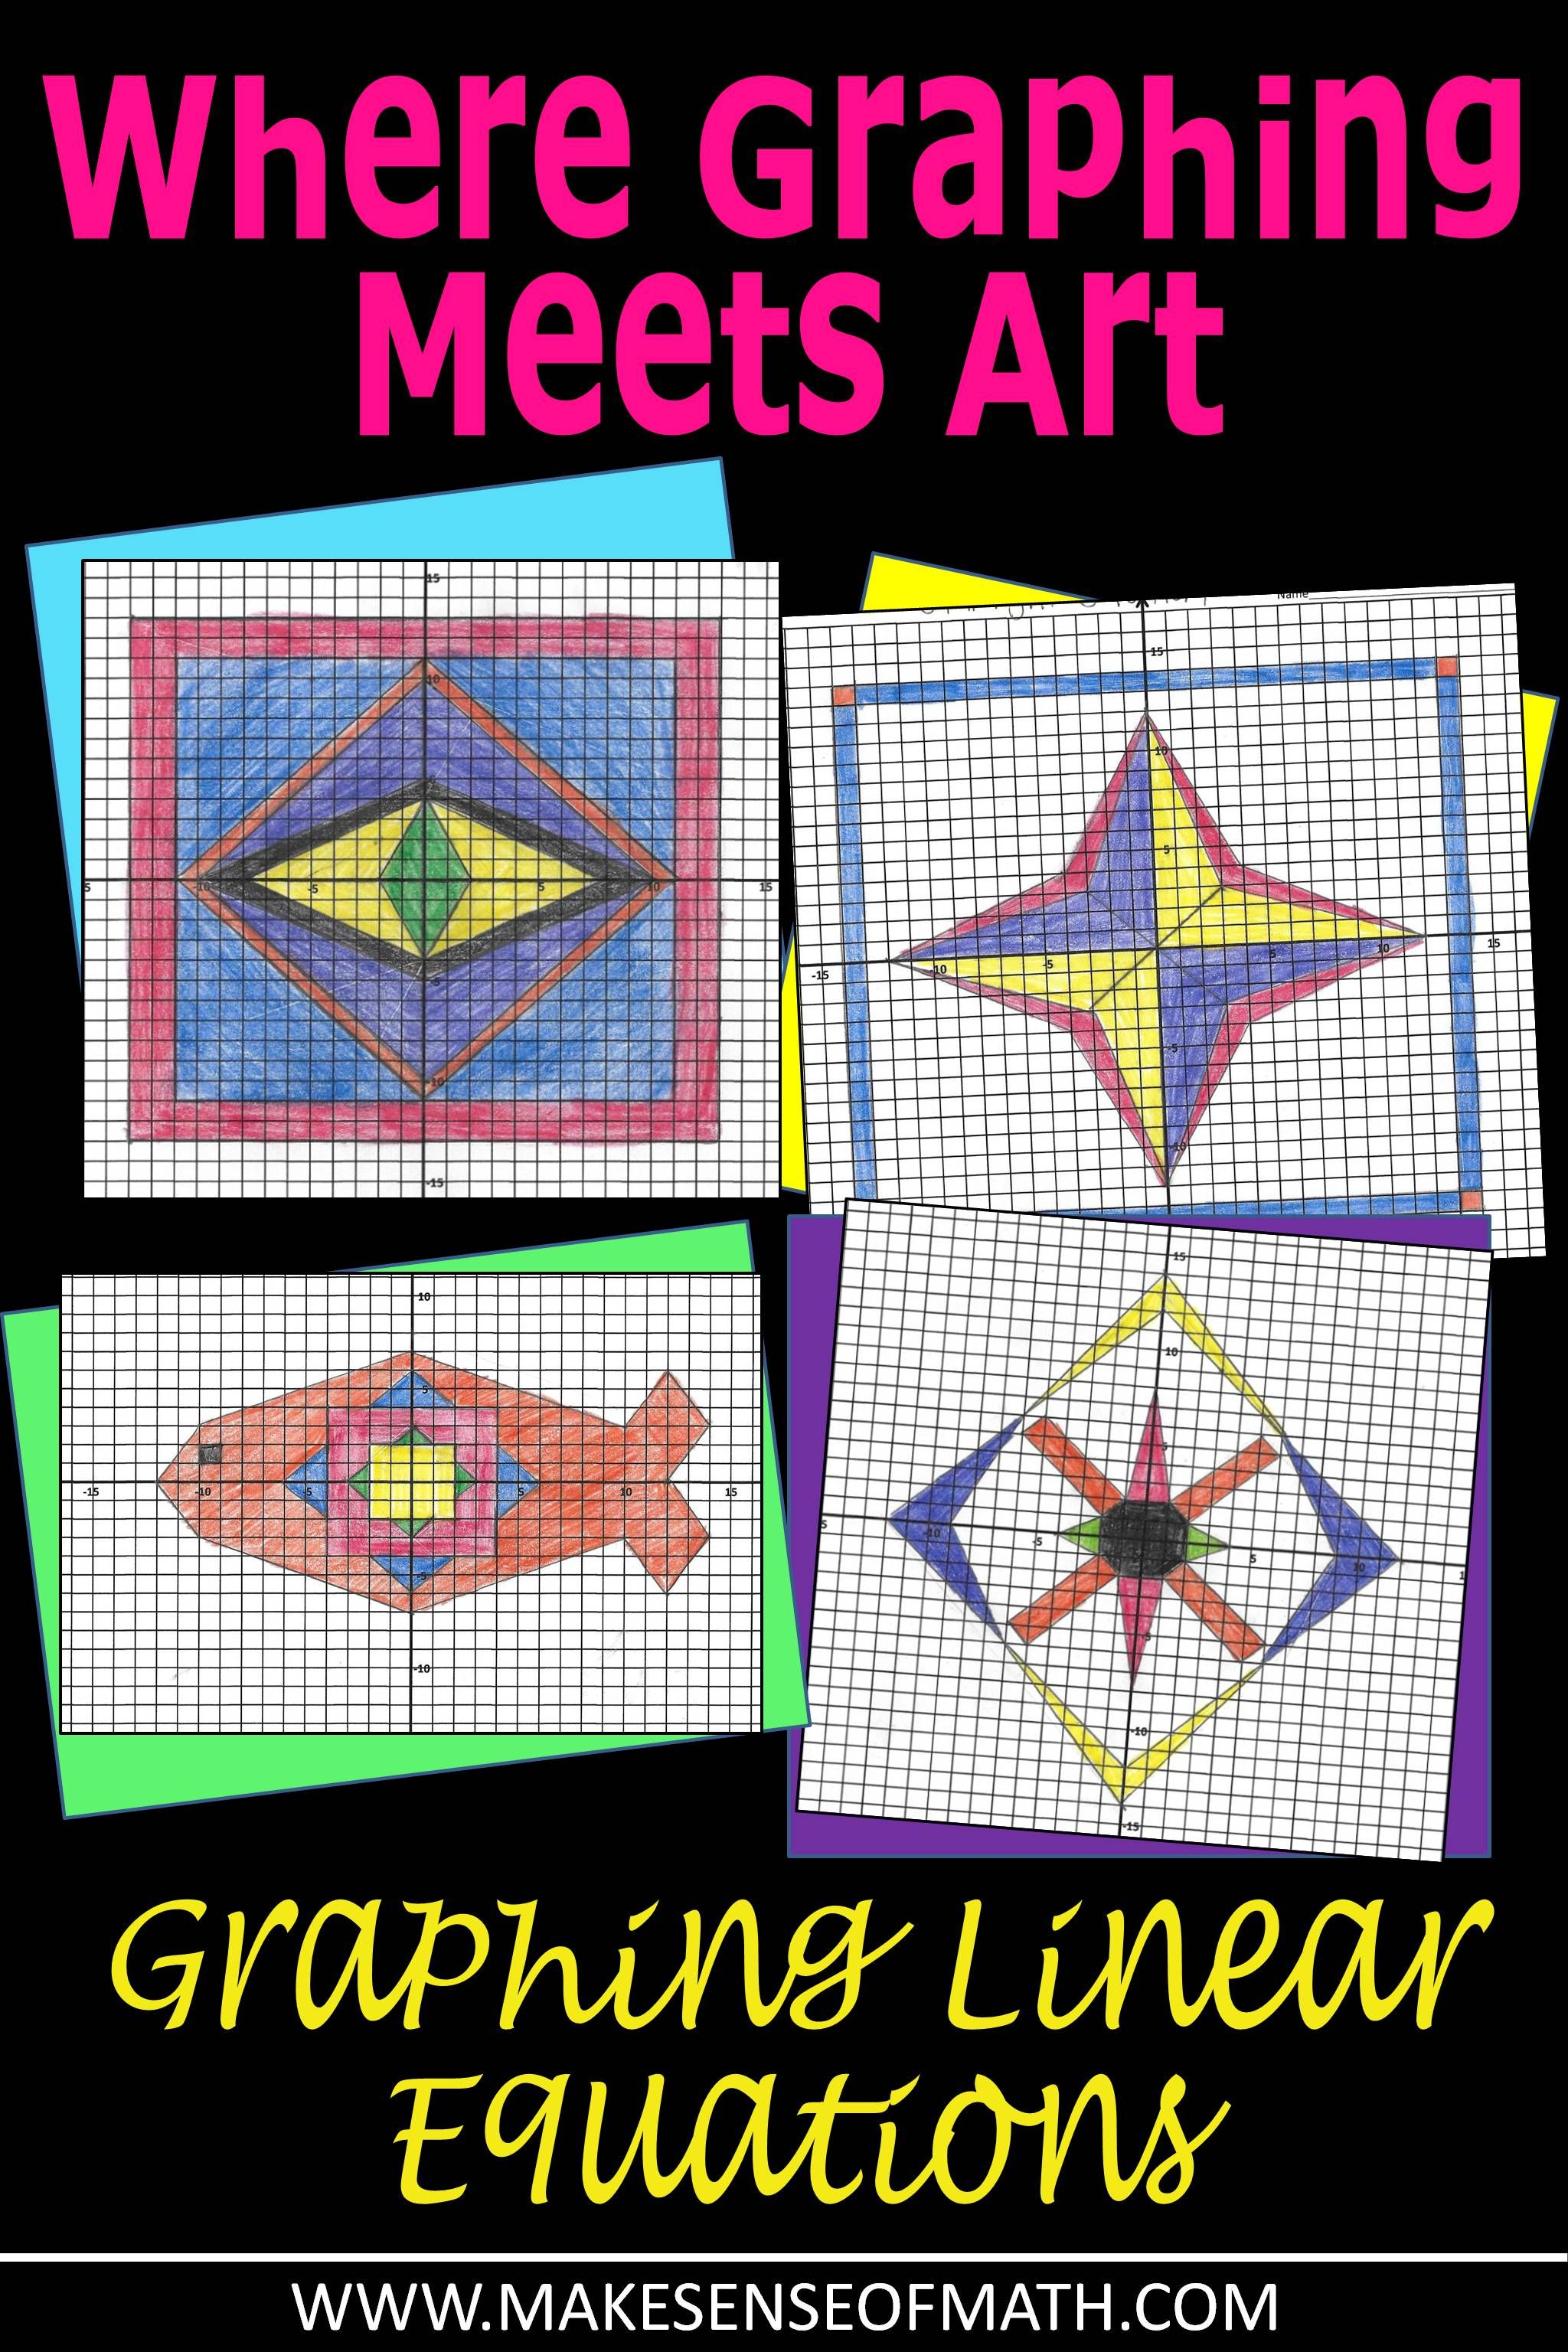 Graphing Linear Equations Activity Graphing Art Bundle Graphing Linear Equations Linear Equations Math Art Activities [ 3072 x 2048 Pixel ]